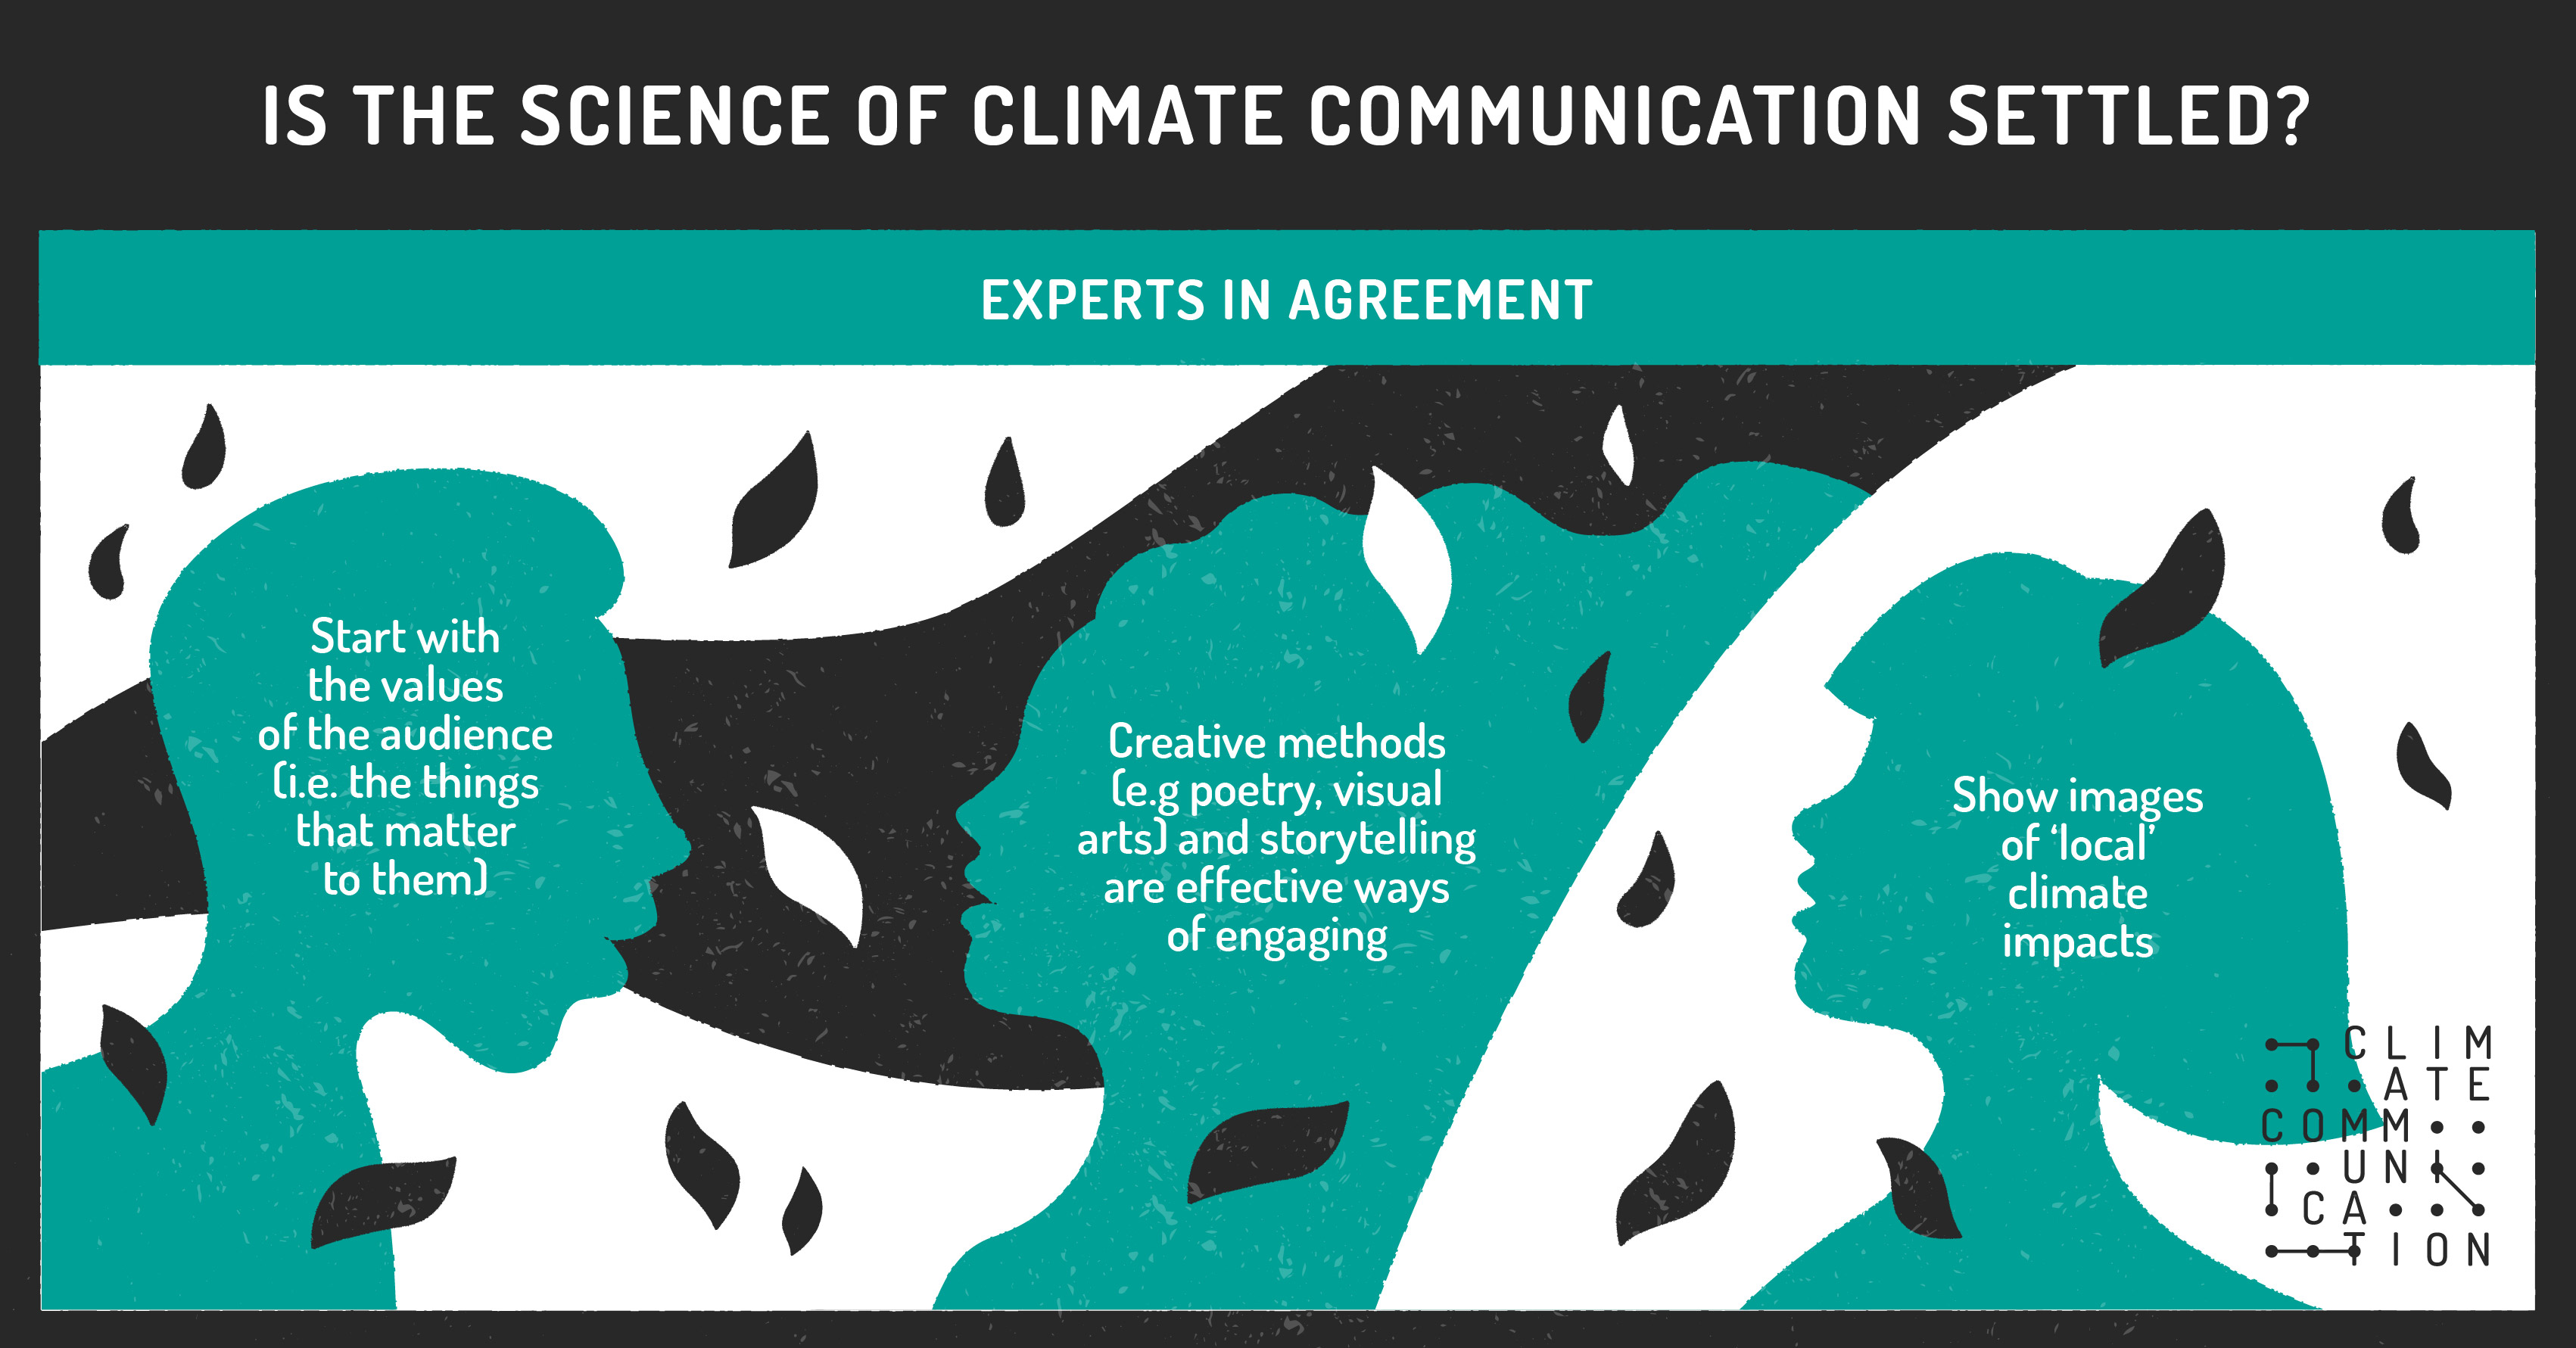 is the science of communication settled?